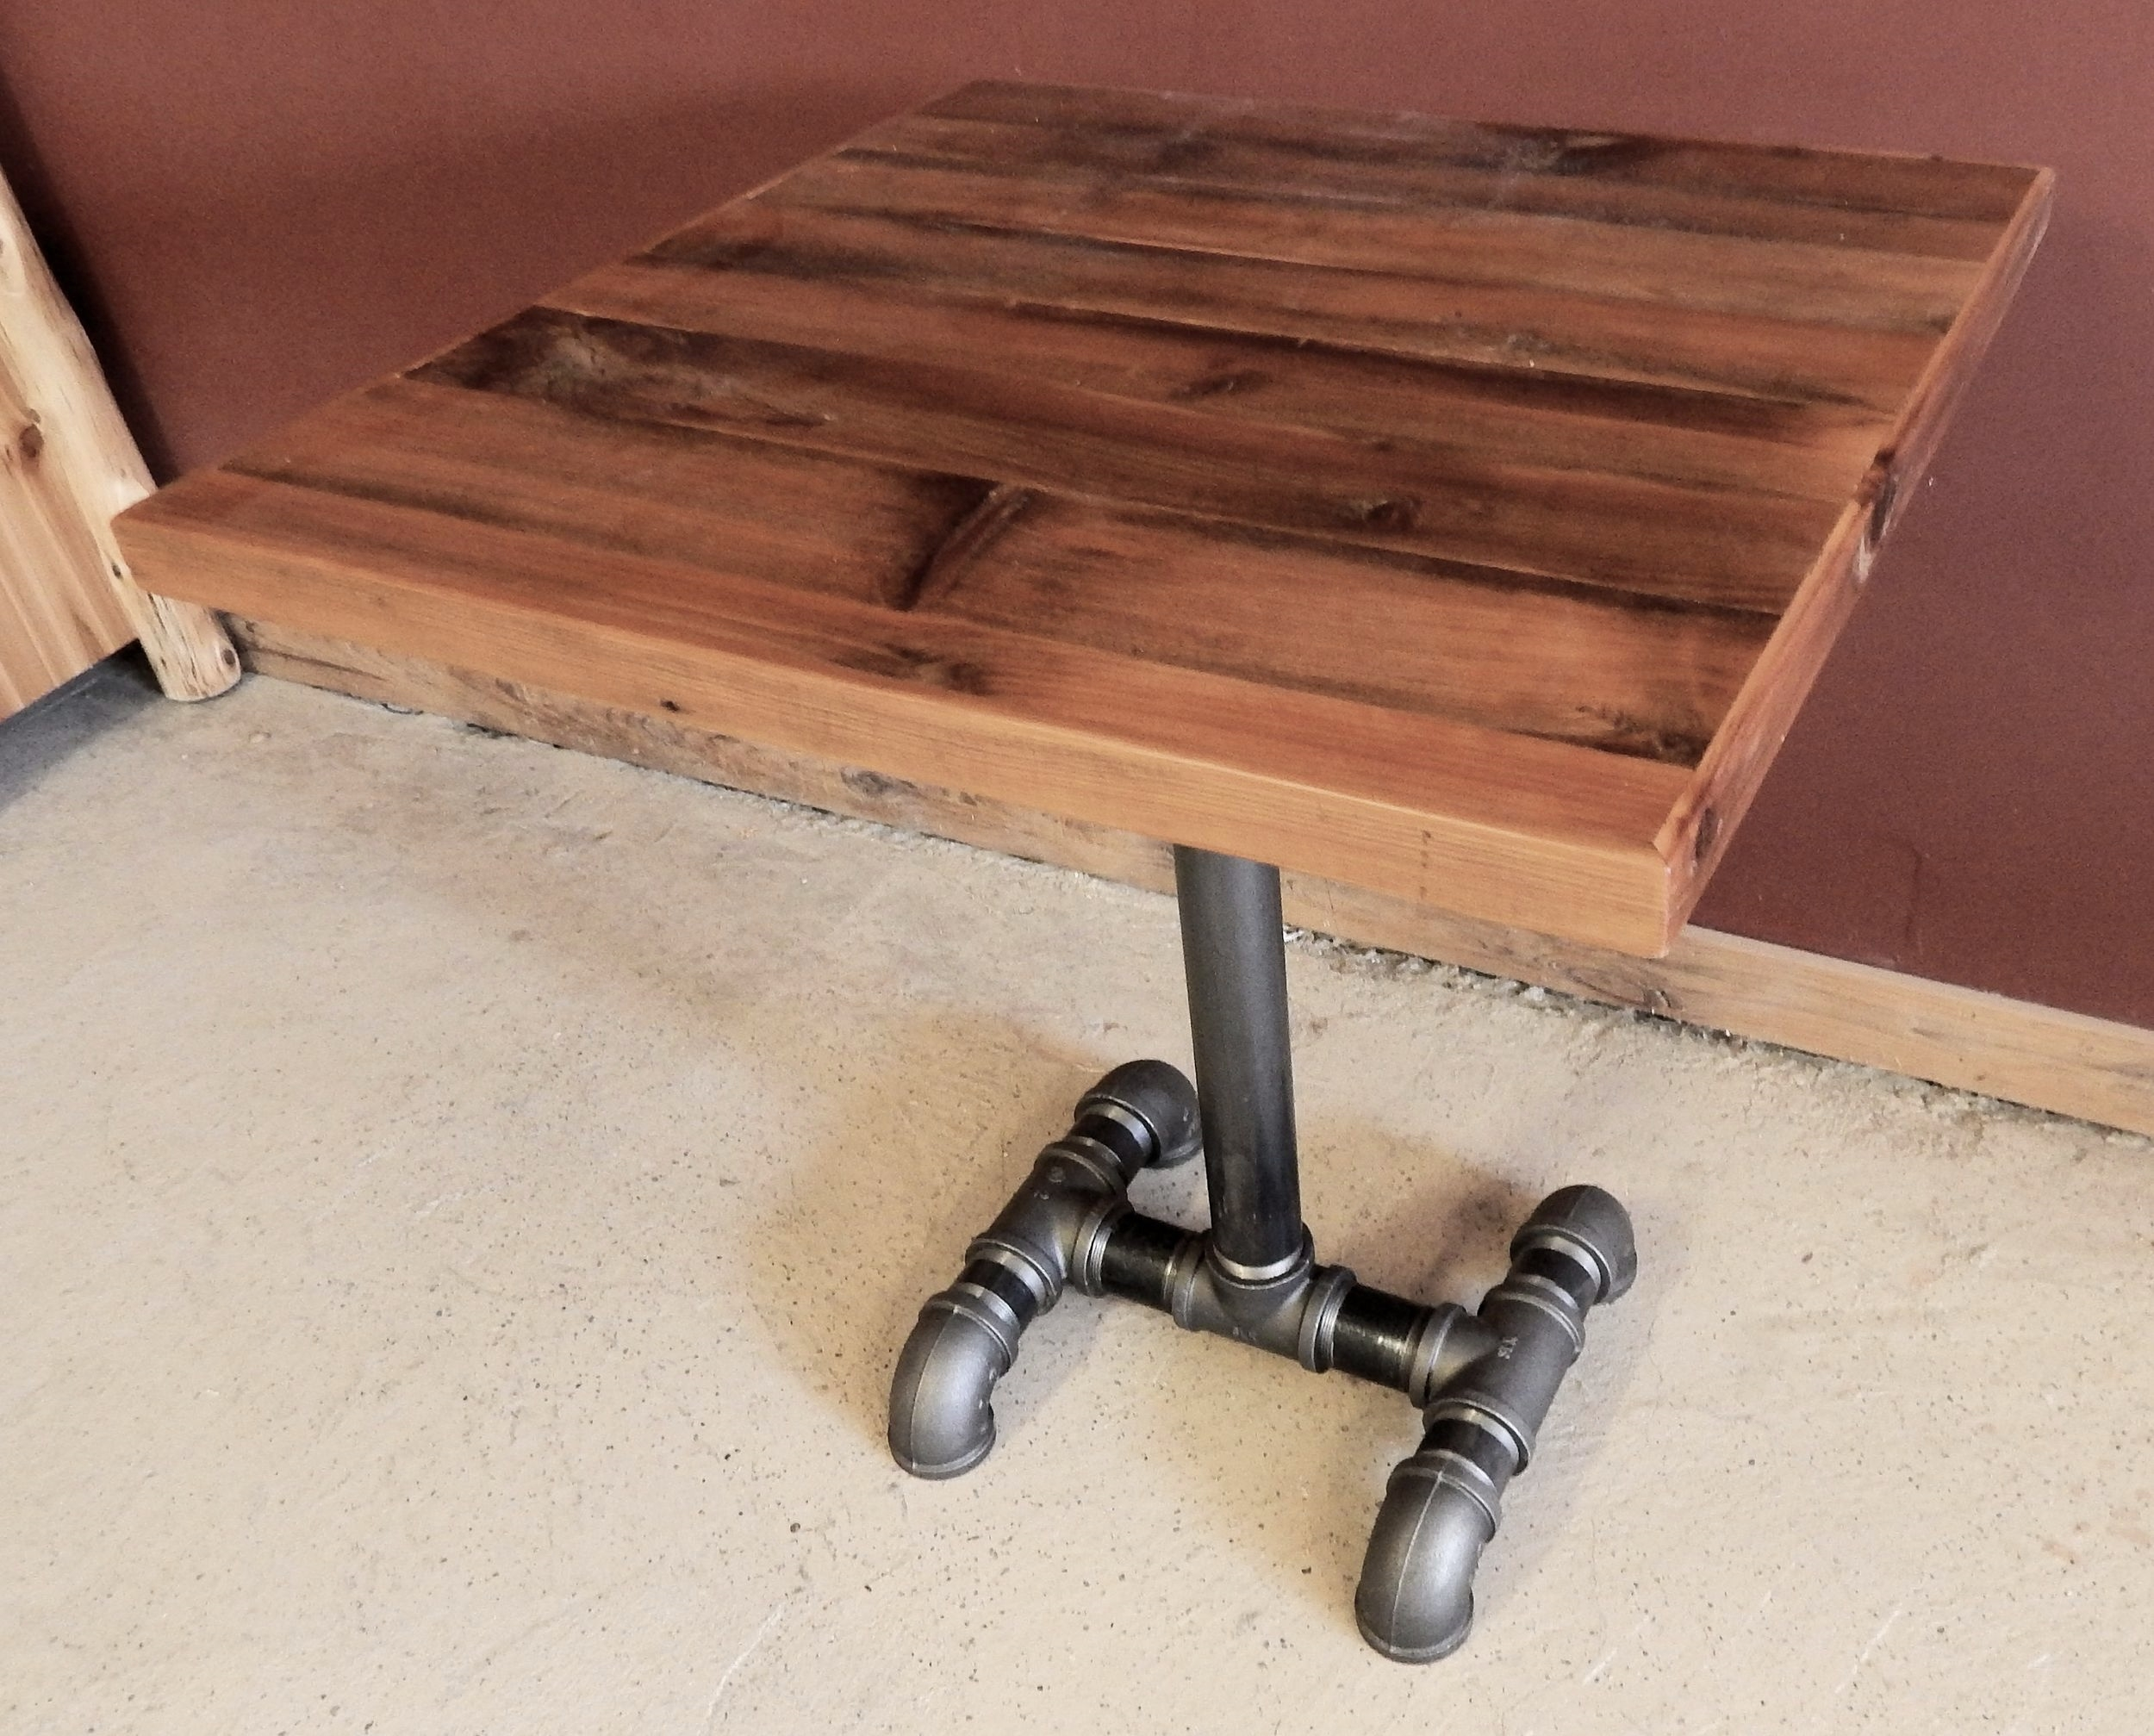 Reastaurant Tables Rustic Restaurant Tables Rustic Restaurant Furniture And Rustic